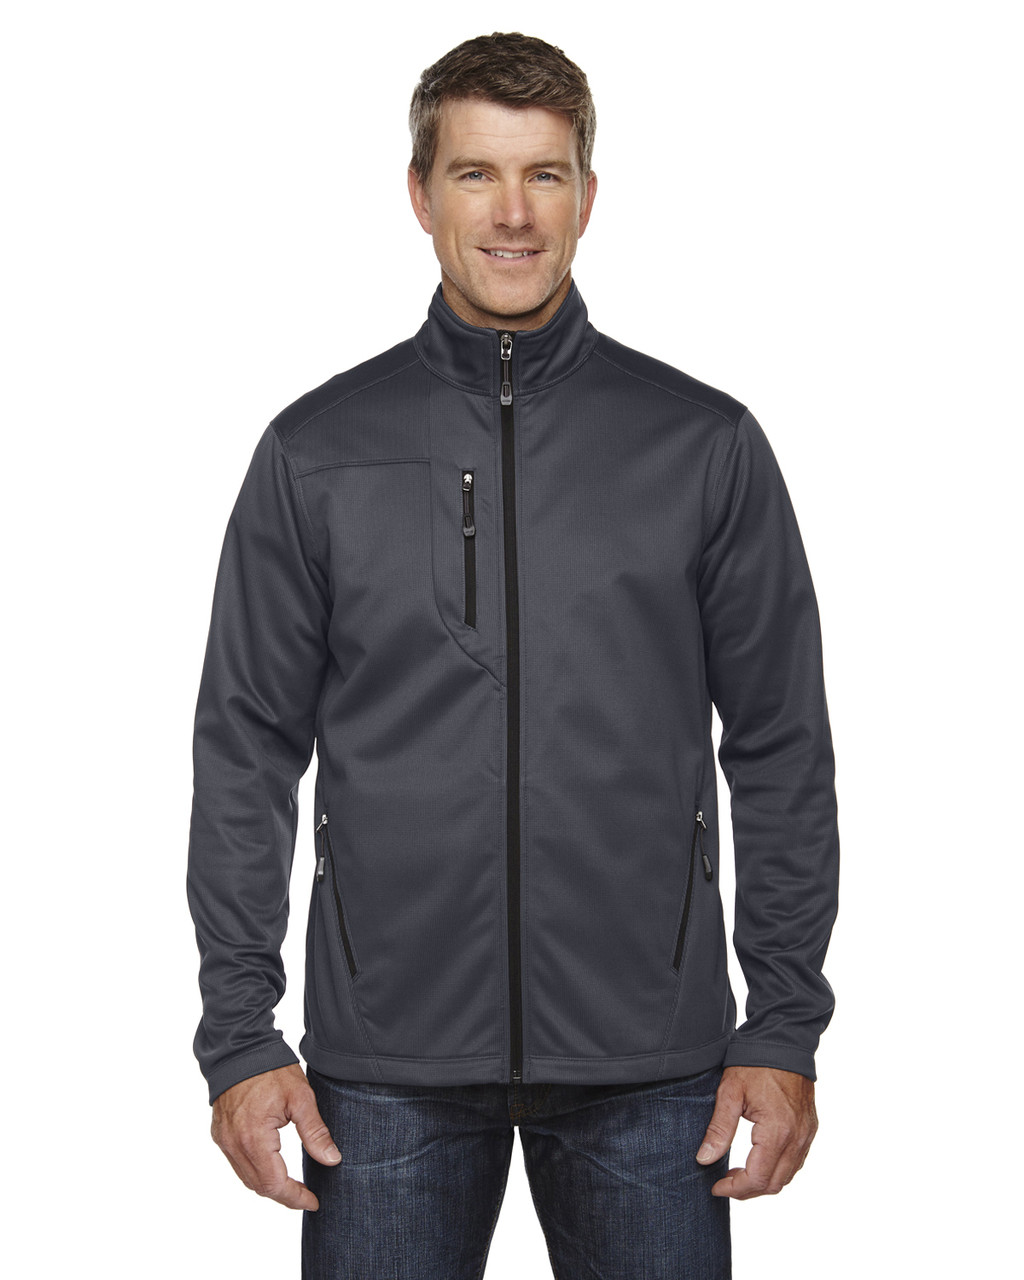 Carbon - 88213 North End Men's Trace Printed Fleece Jacket | Blankclothing.ca